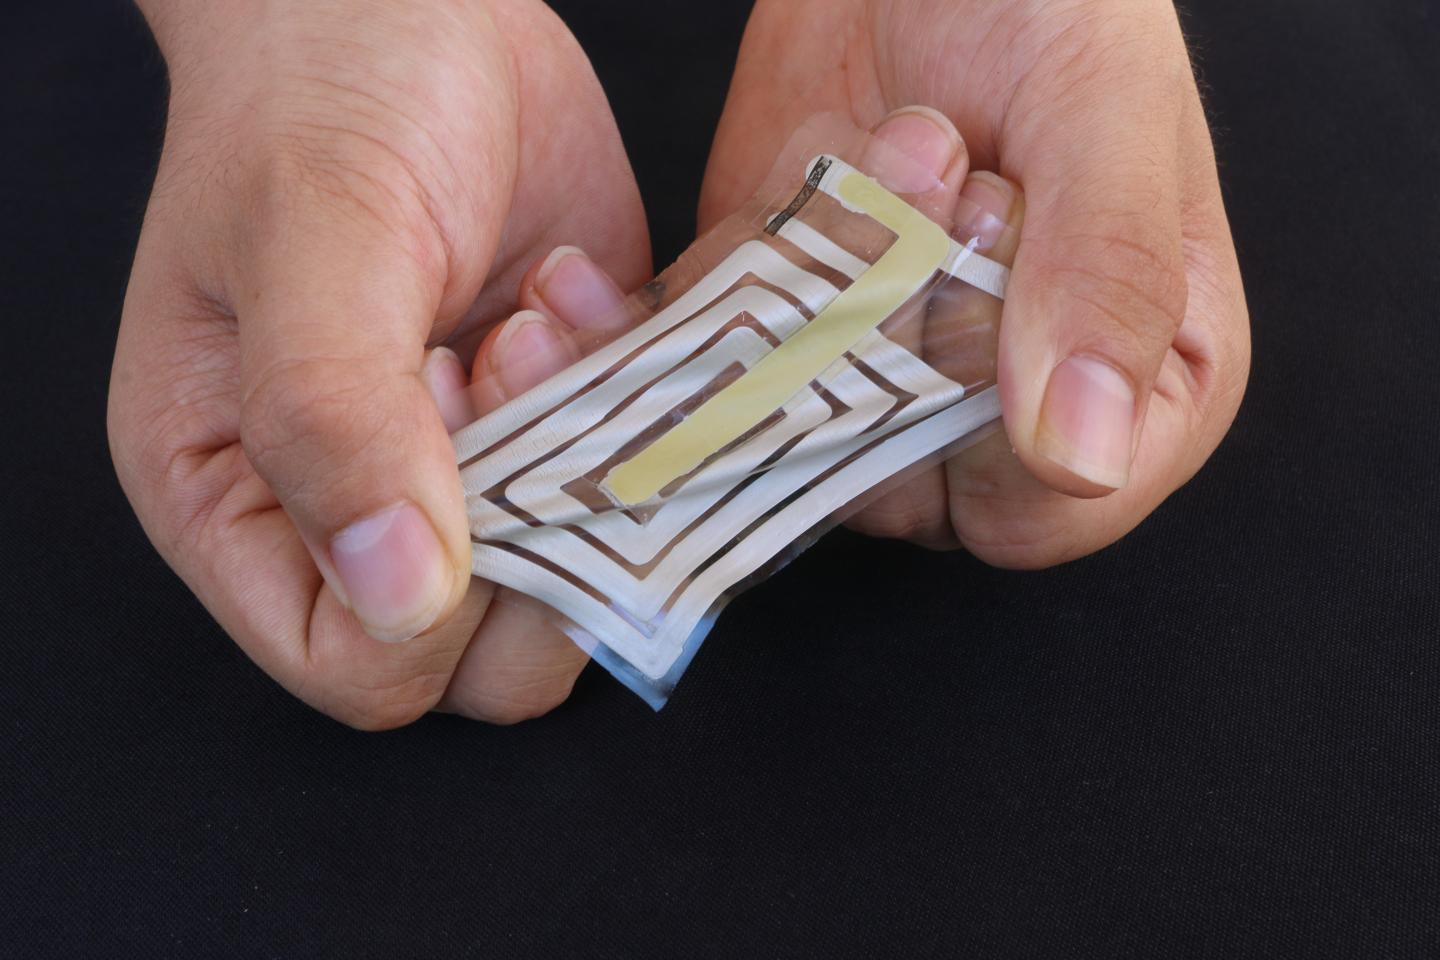 One of the stretchable, flexible, skin-adhered BodyNet sensors